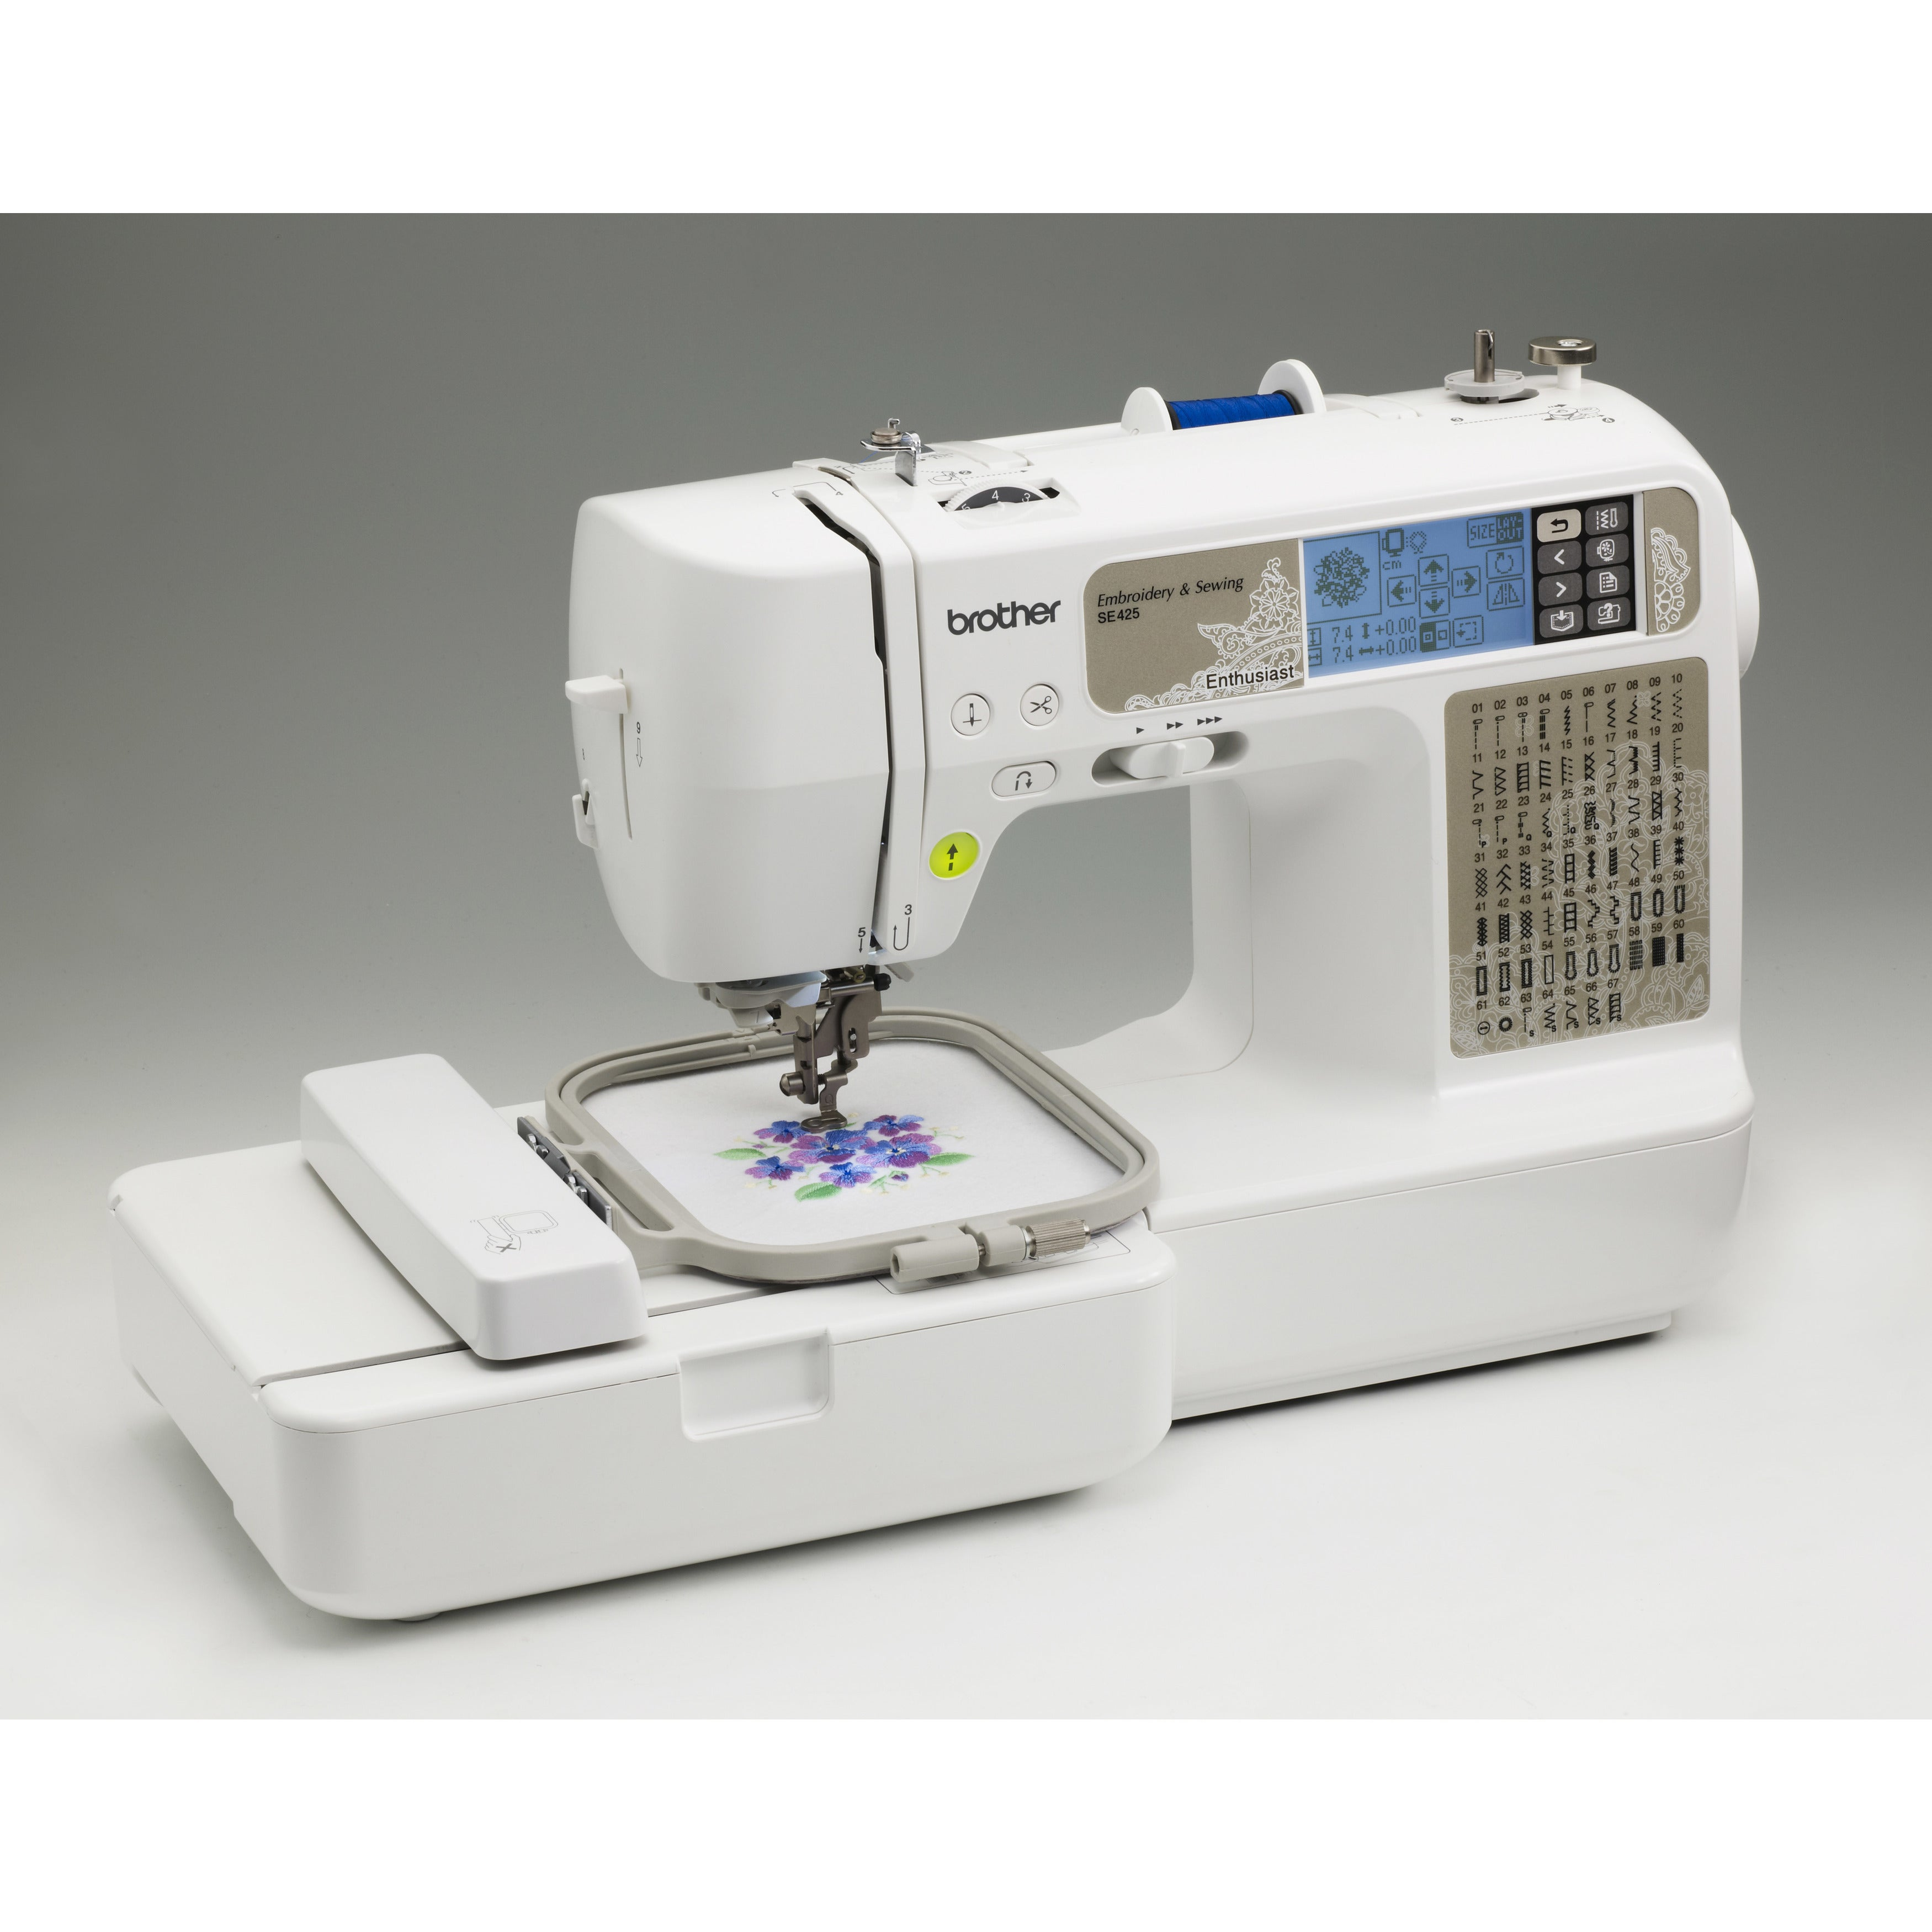 Brother se computerized sewing and embroidery machine